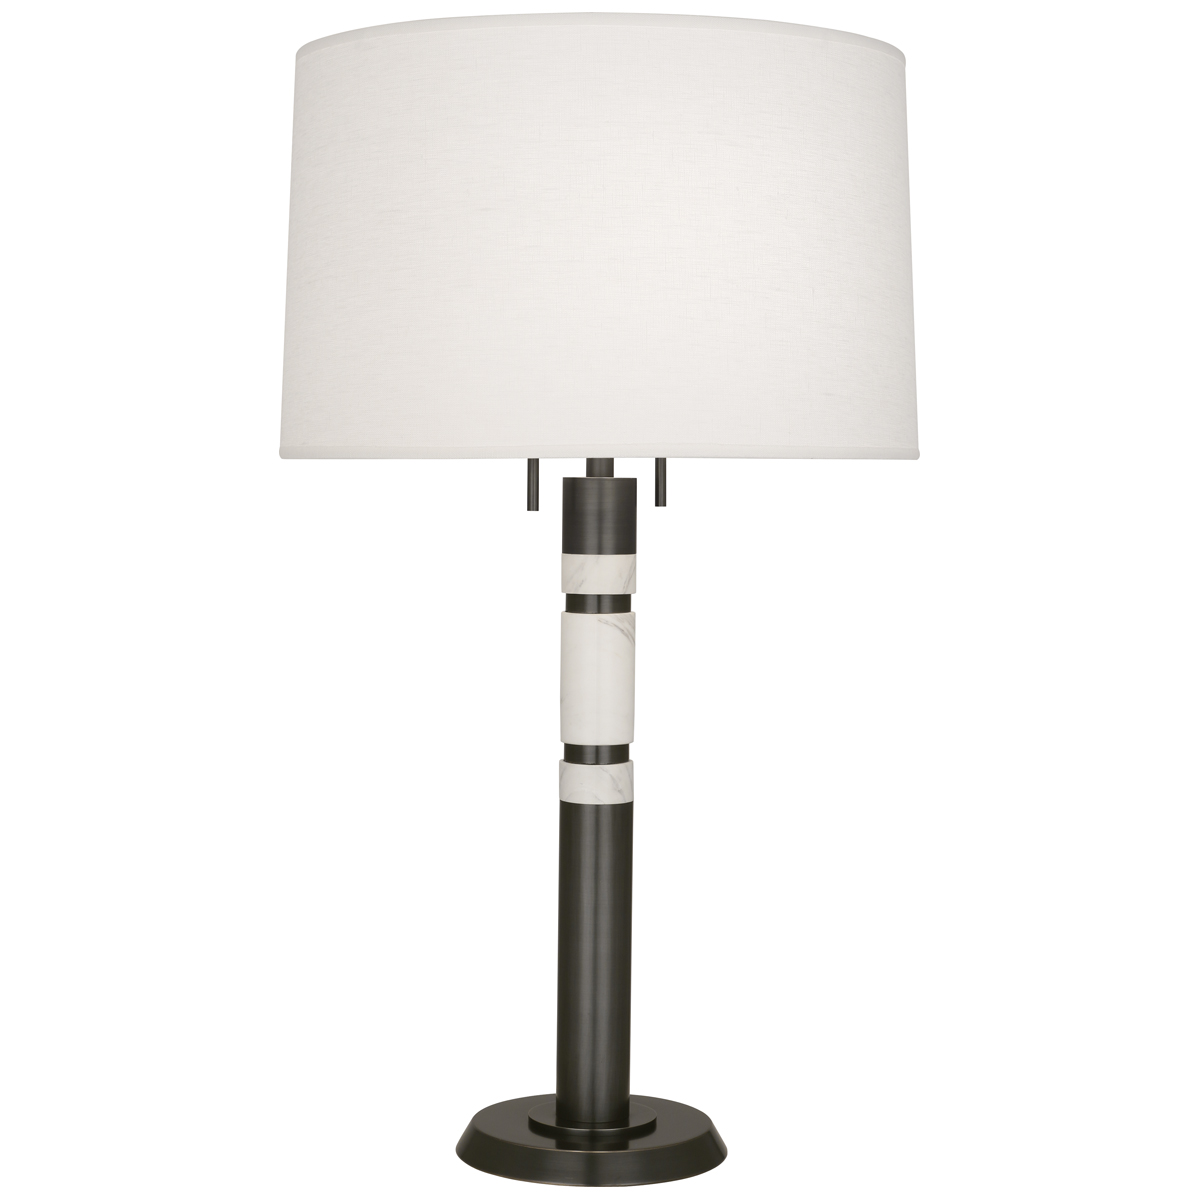 Hudson Table Lamp Style #Z215